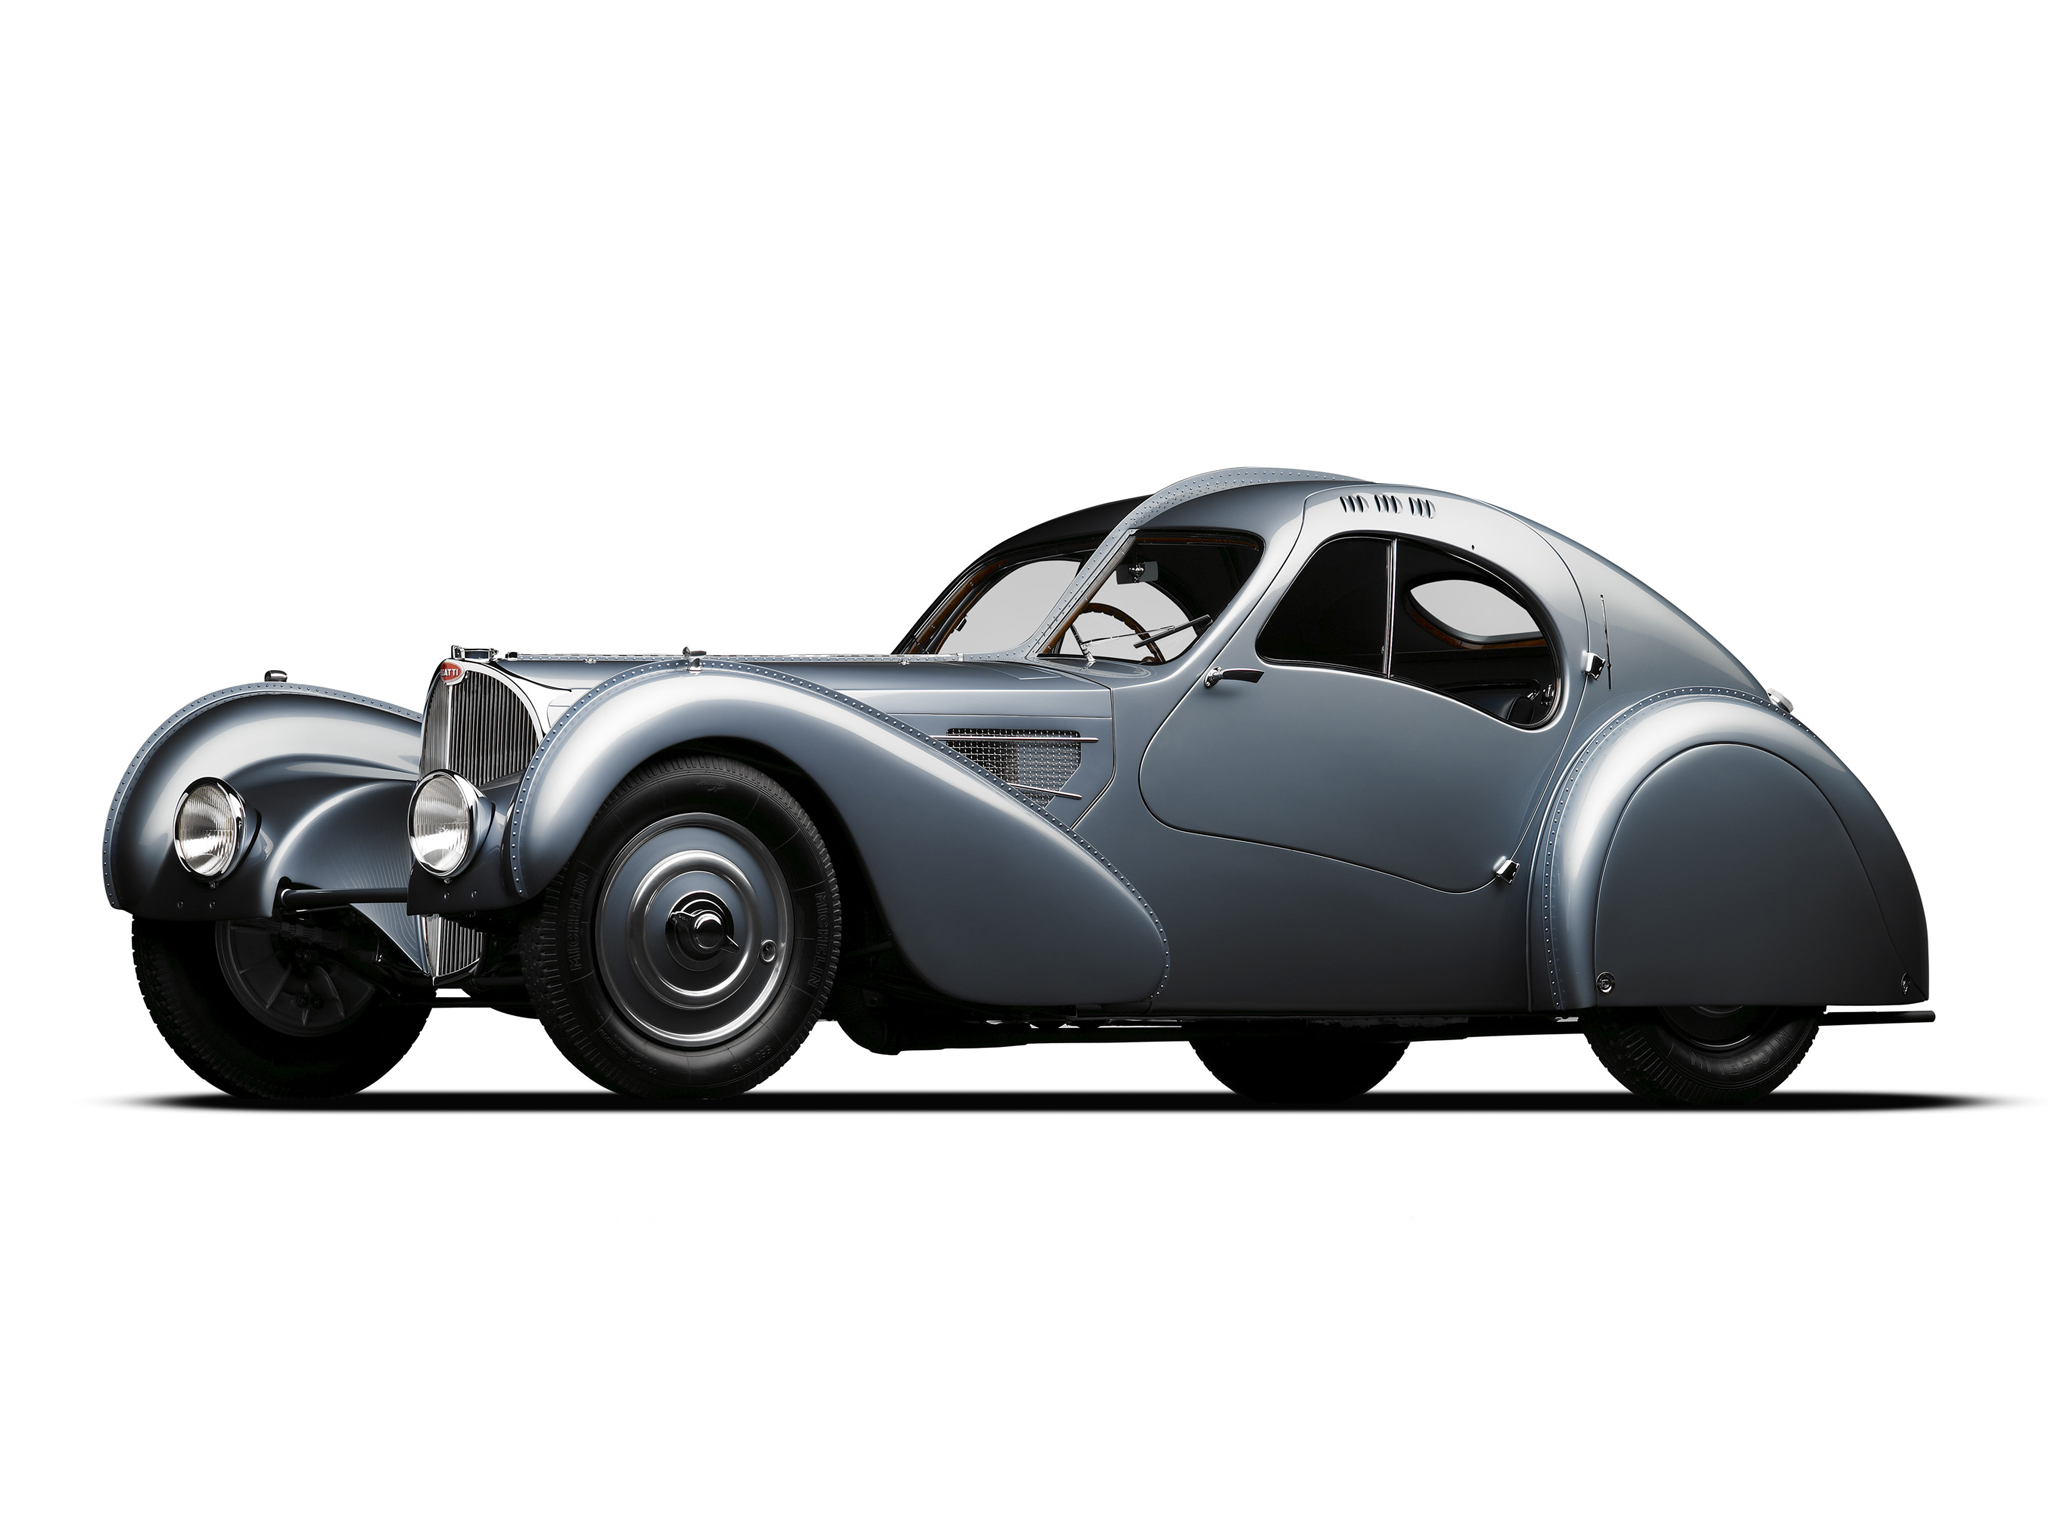 1936 bugatti type 57sc atlantic coupe supercar retro r. Cars Review. Best American Auto & Cars Review